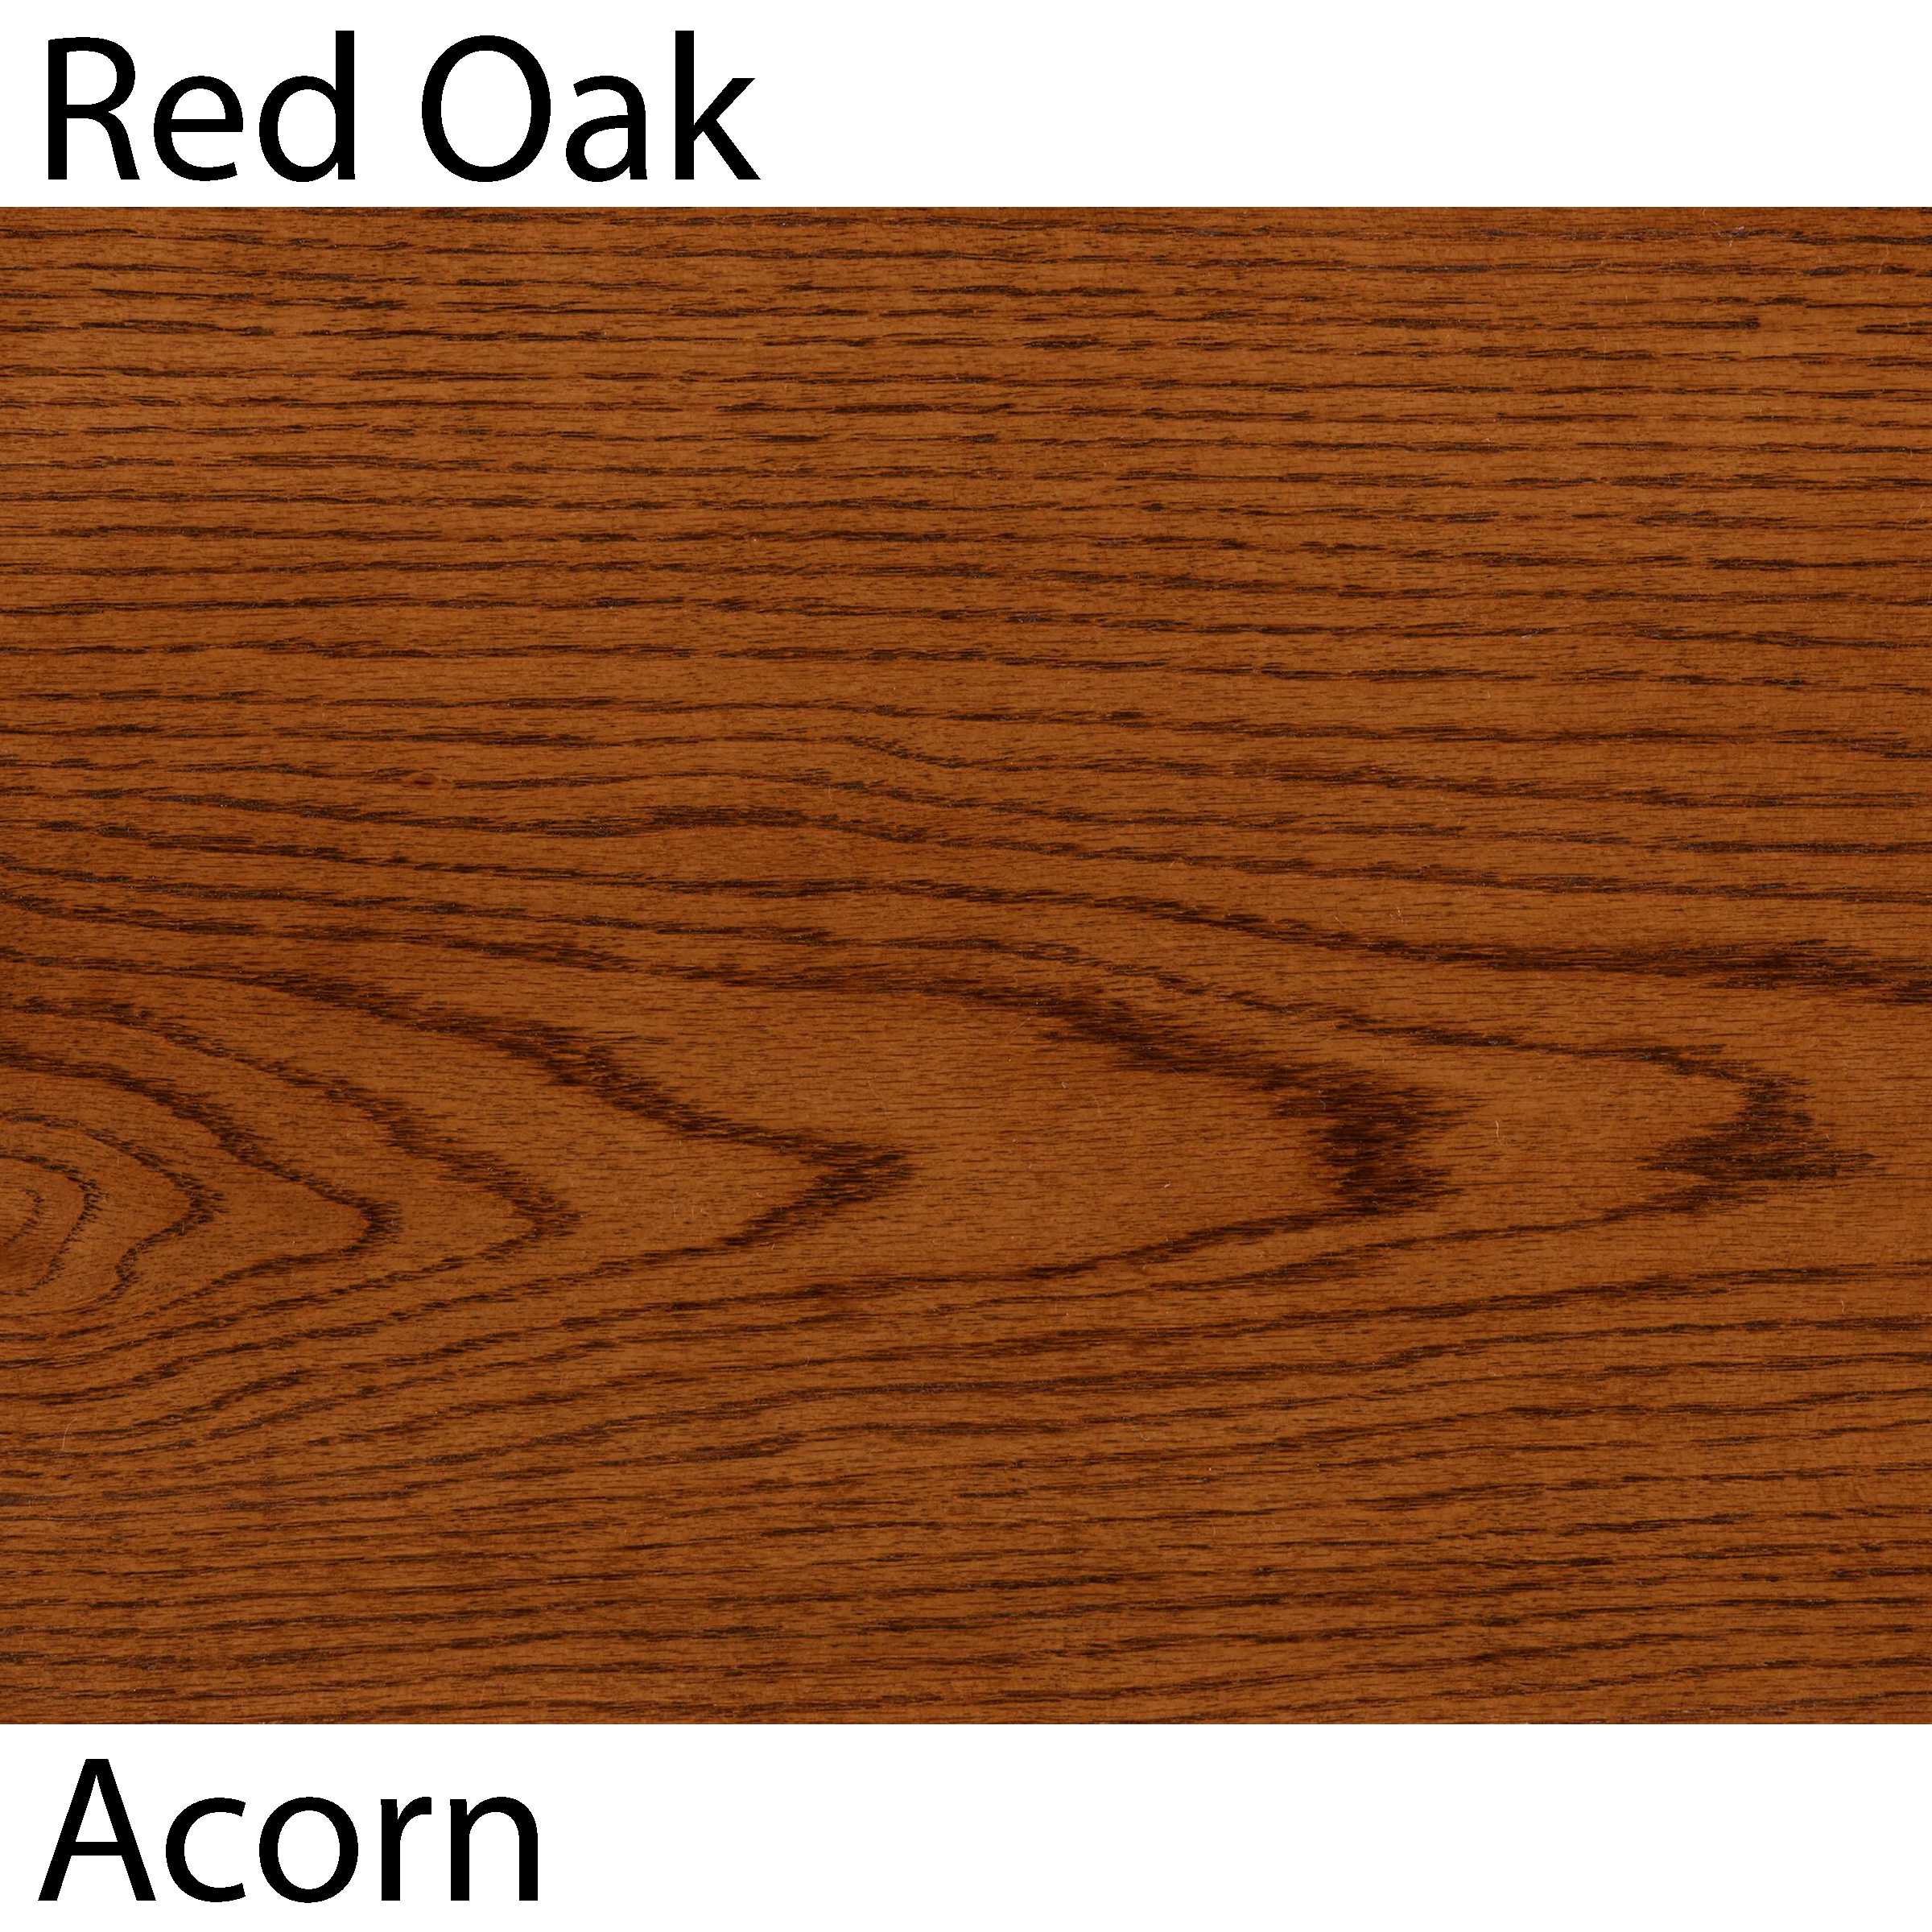 Red oak wood stairsupplies™